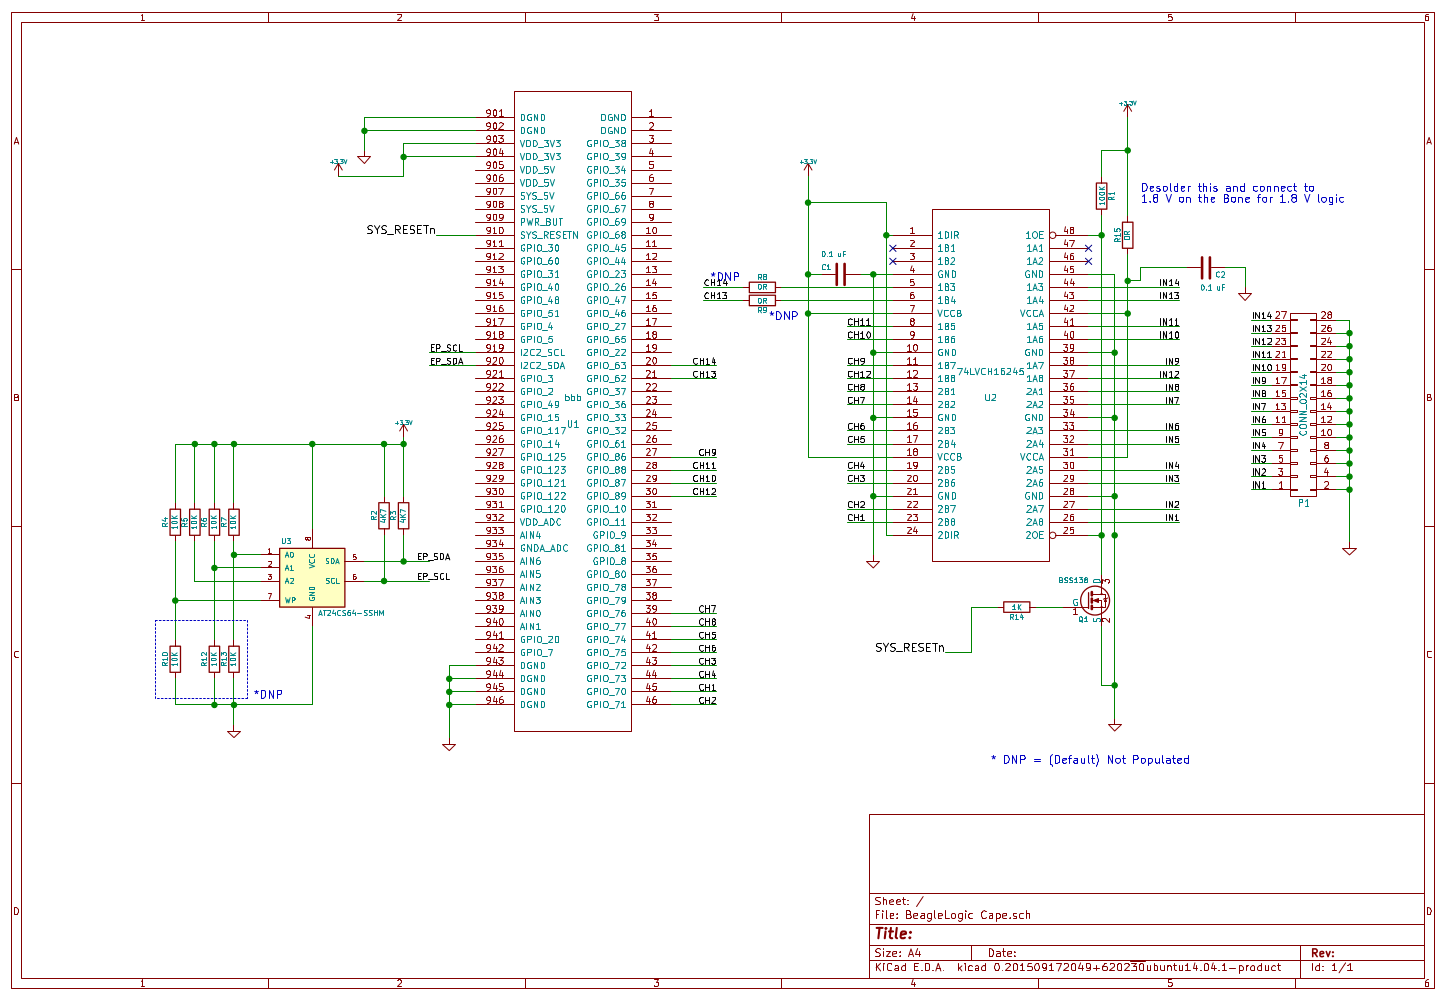 BeagleLogic Cape Schematics & Explanation | Details | aday.io on geiger counter schematic, bluetooth schematic, electronics schematic, wireless schematic, breadboard schematic, apple schematic, usb schematic, quadcopter schematic, xbee schematic, flux capacitor schematic, msp430 schematic, lcd schematic, gps schematic, solar schematic, arduino schematic,